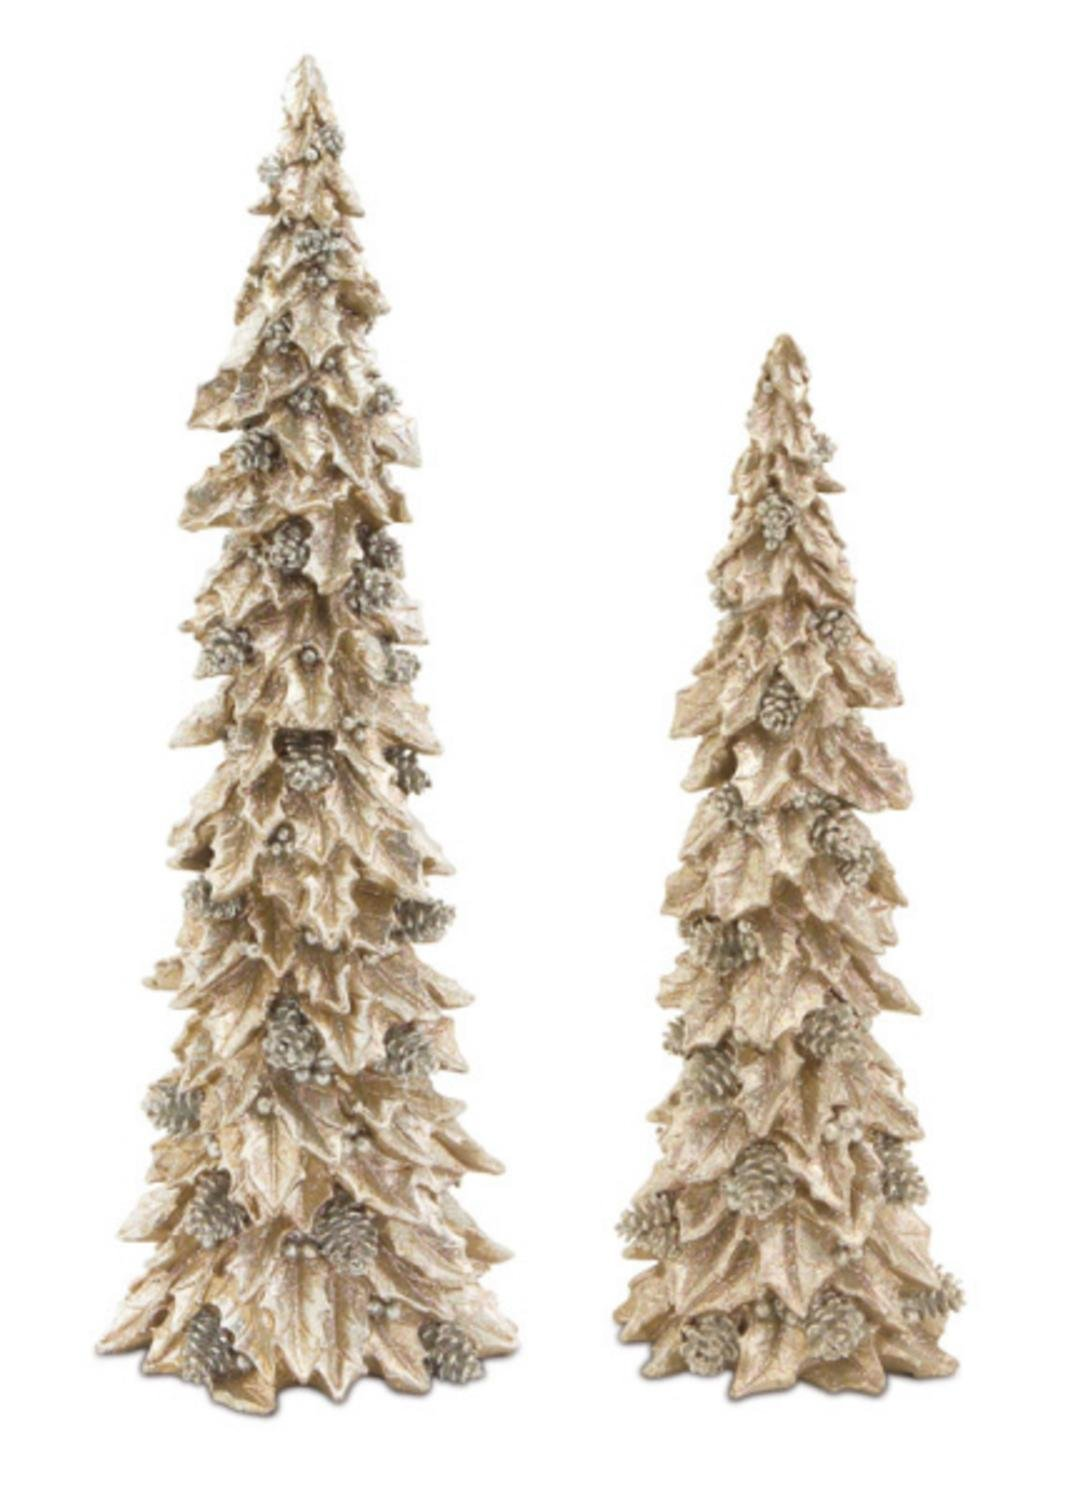 amazoncom pack of 2 glittered gold and silver holly trees with pine cones table top christmas decorations 19 home kitchen - Pine Cone Christmas Tree Decorations